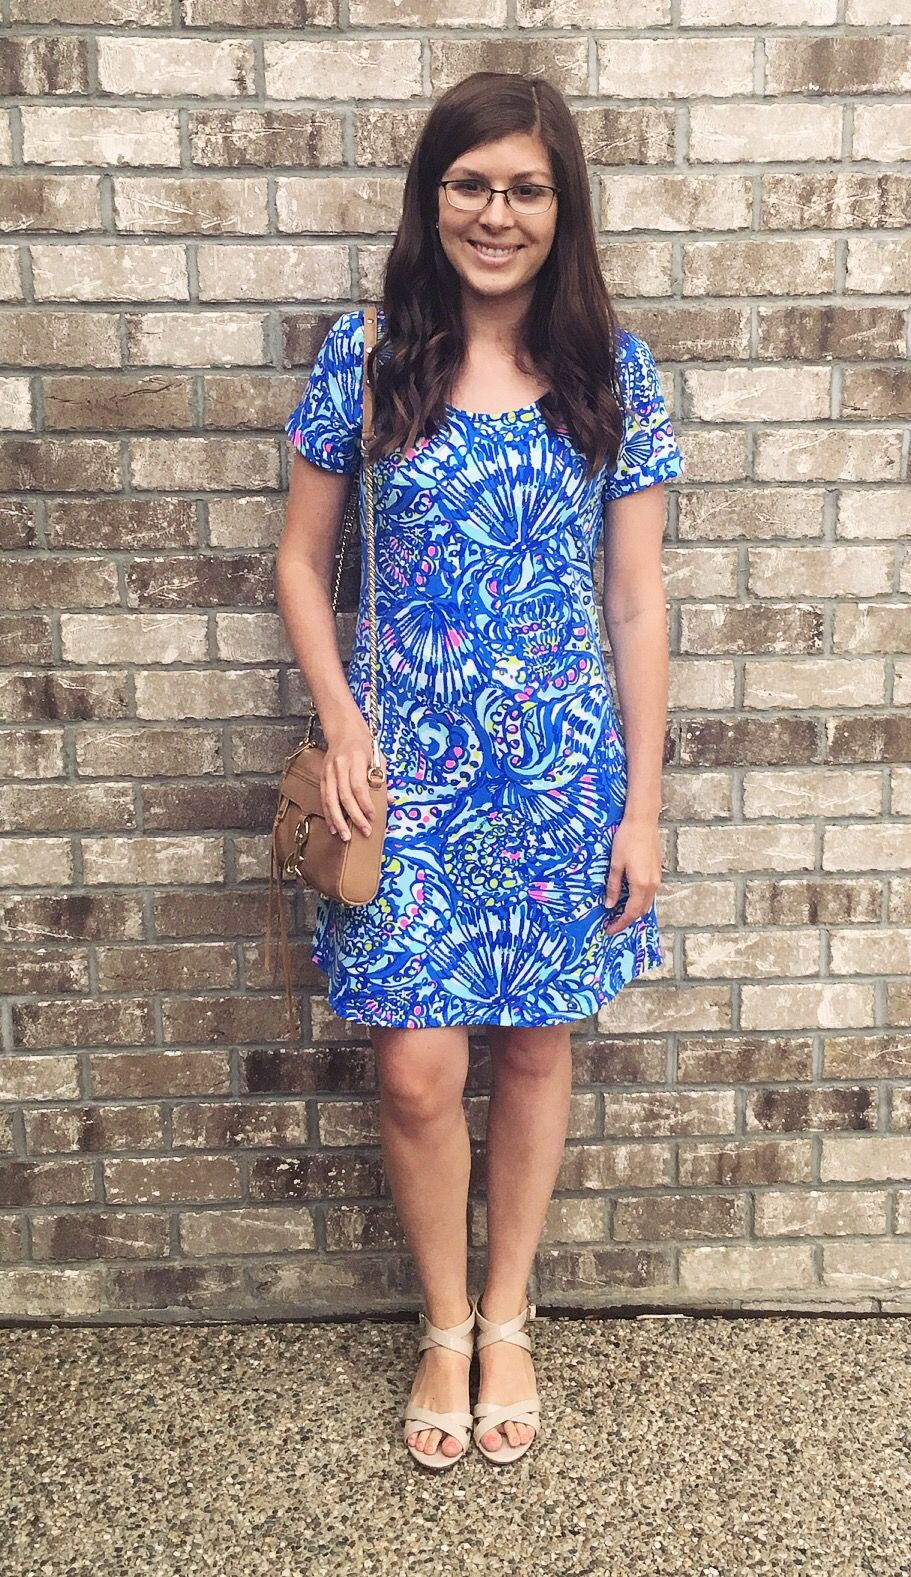 a46a7ab8ad9 Lily Pulitzer UPF 50+ Tammy Dress OOTD https   2classysisters.com